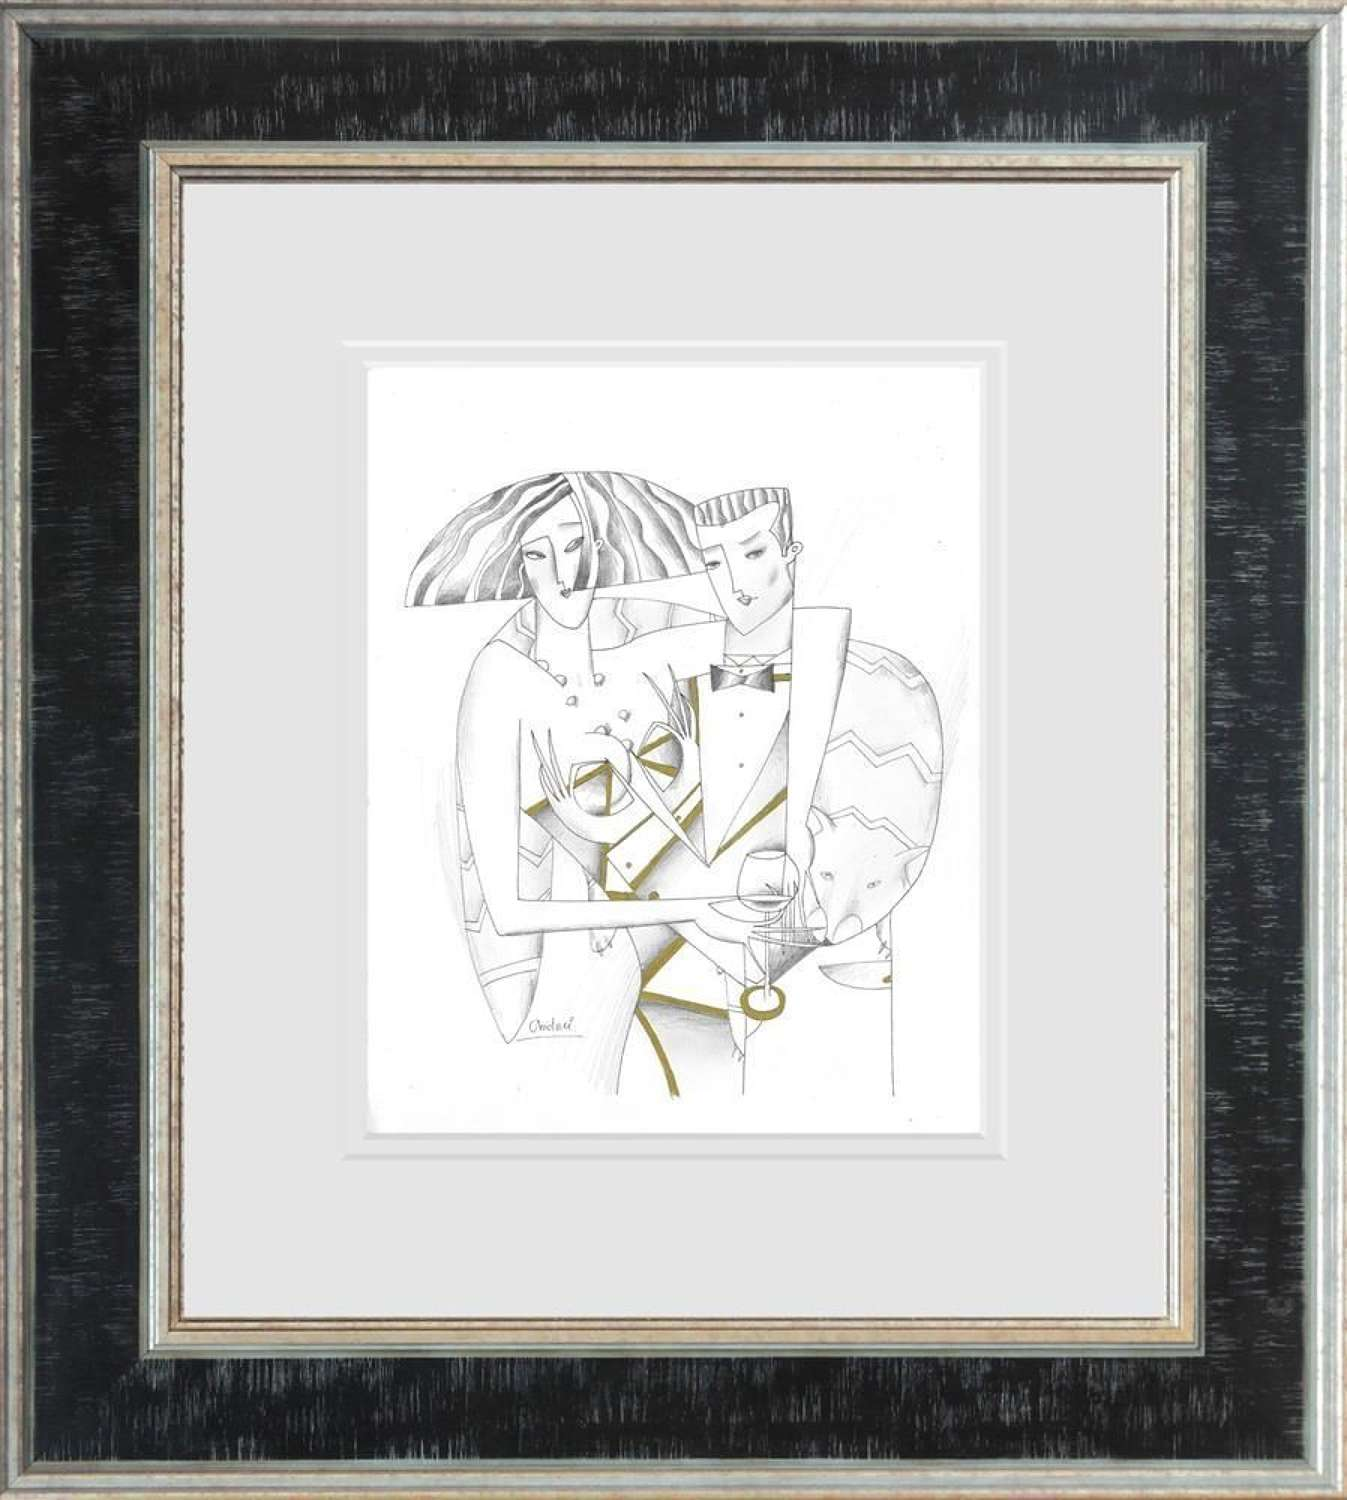 Lord And Lady II- Framed Sketch by Andrei Protsouk